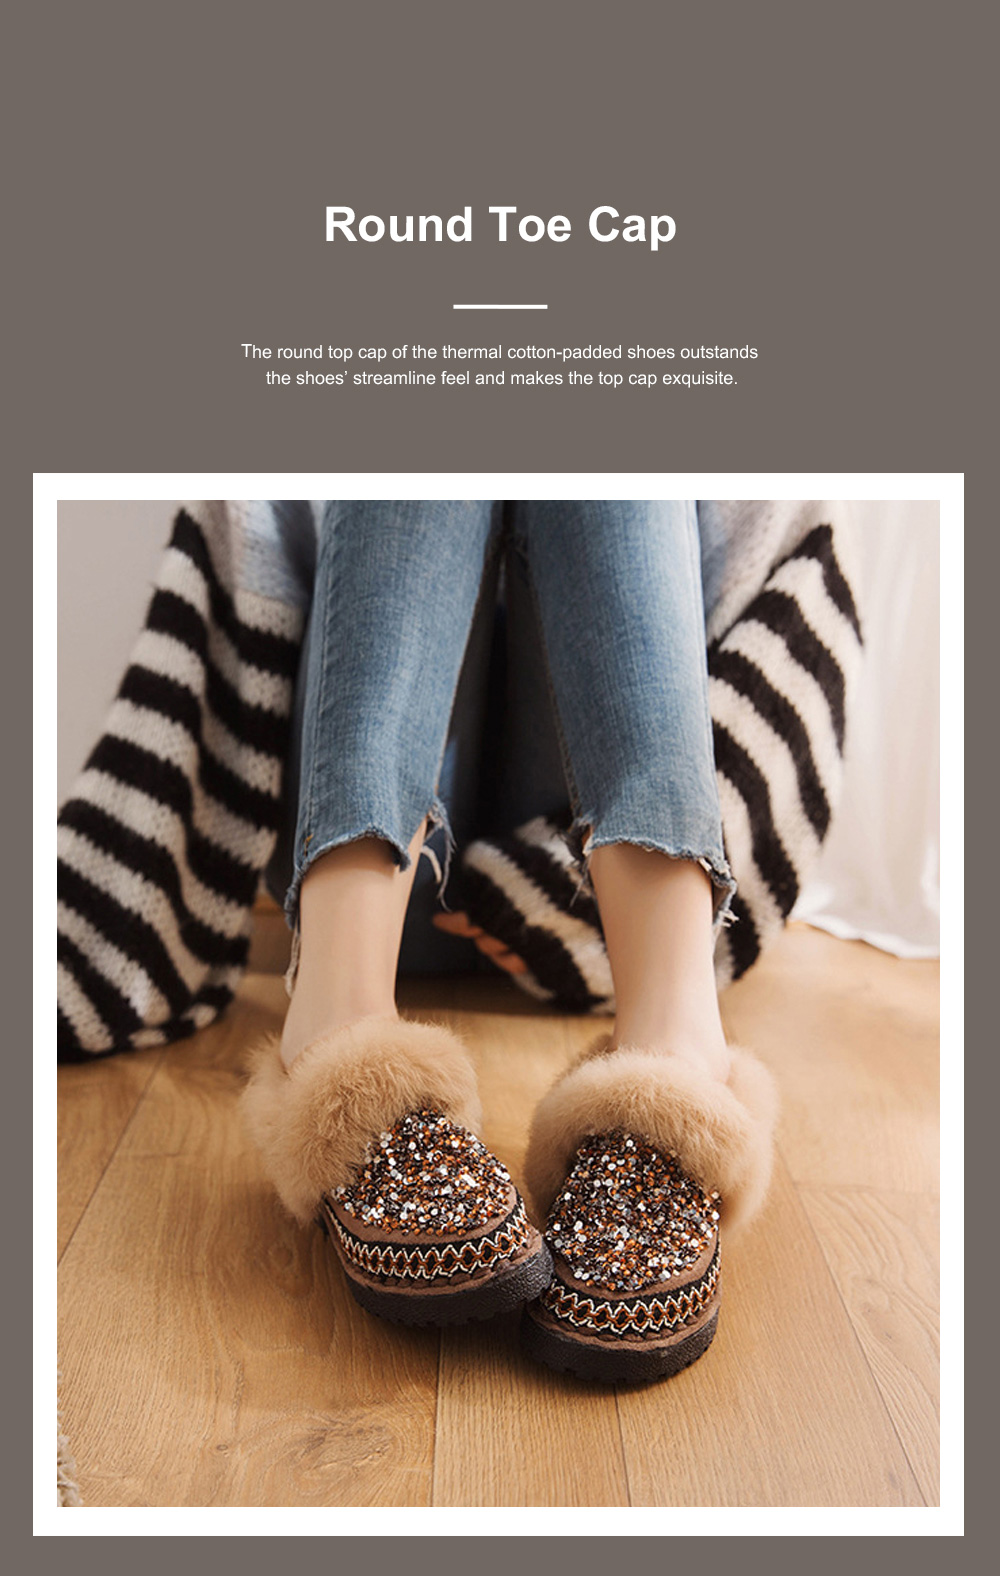 Thermal Cotton-padded Shoes for Women Winter Wear Paillette Flat-heeled PU Fur Shoes Thickened and Brushed Snow Boot 4